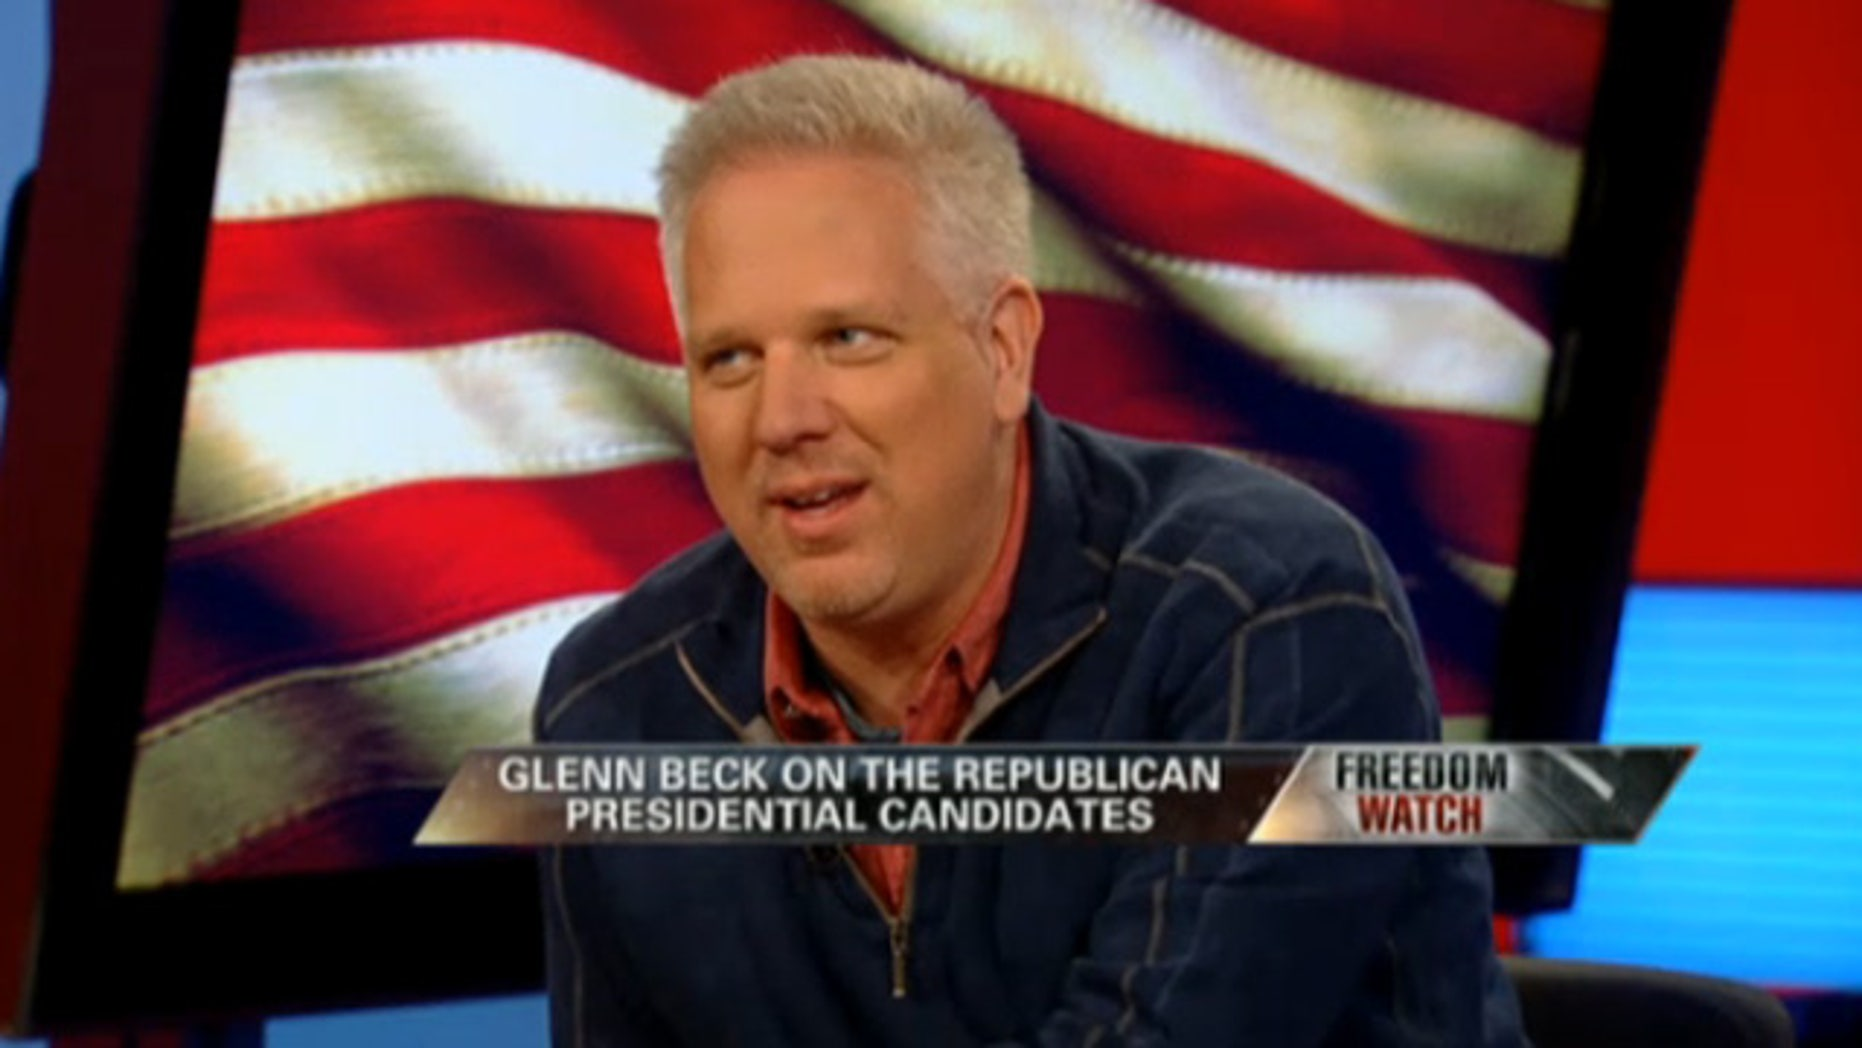 Dec. 9, 2011: Glenn Beck discusses the 2012 election on Fox Business Network.